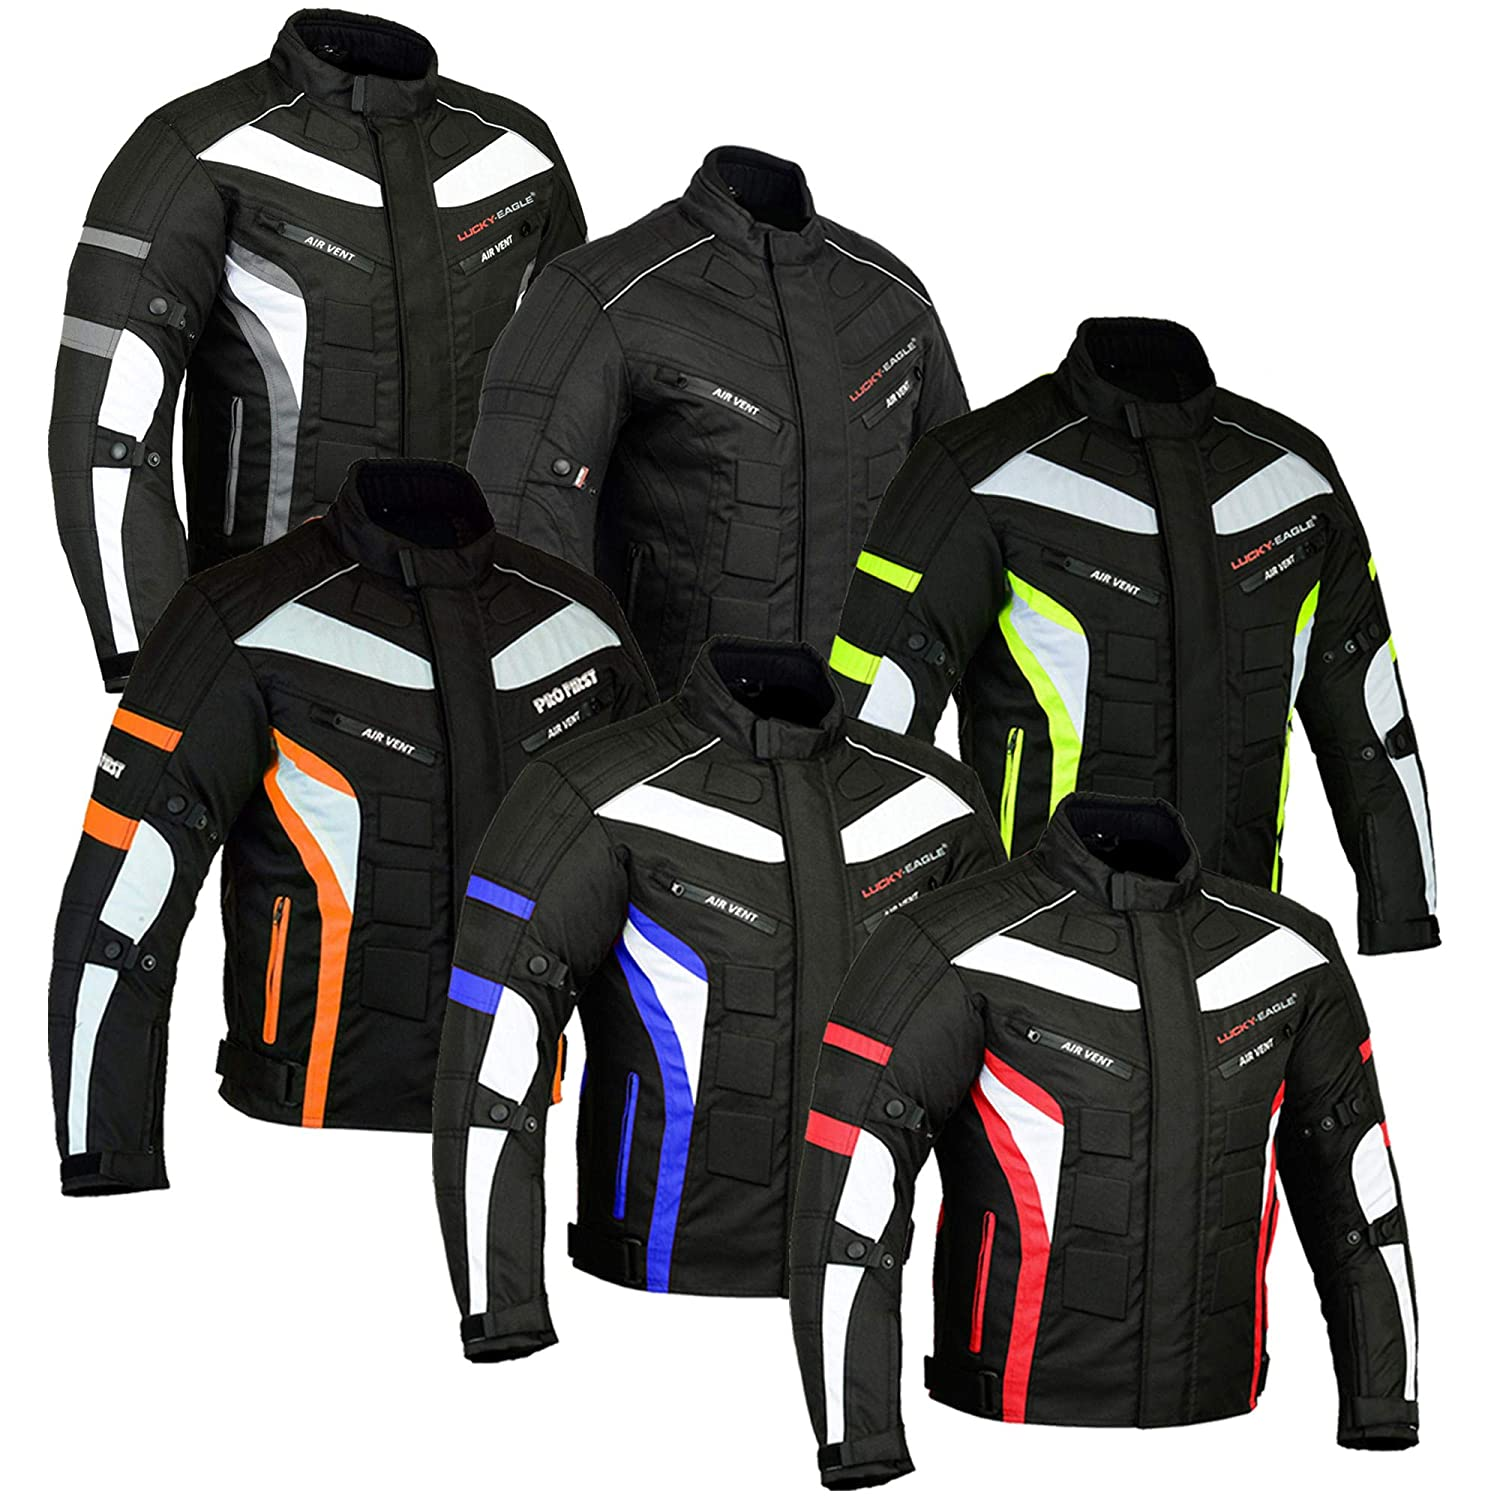 Waterproof Motorbike Motorcycle Scooter Rider Jacket in Cordura Fabric and CE Approved Armour For Mens Boys in 6 Different Color